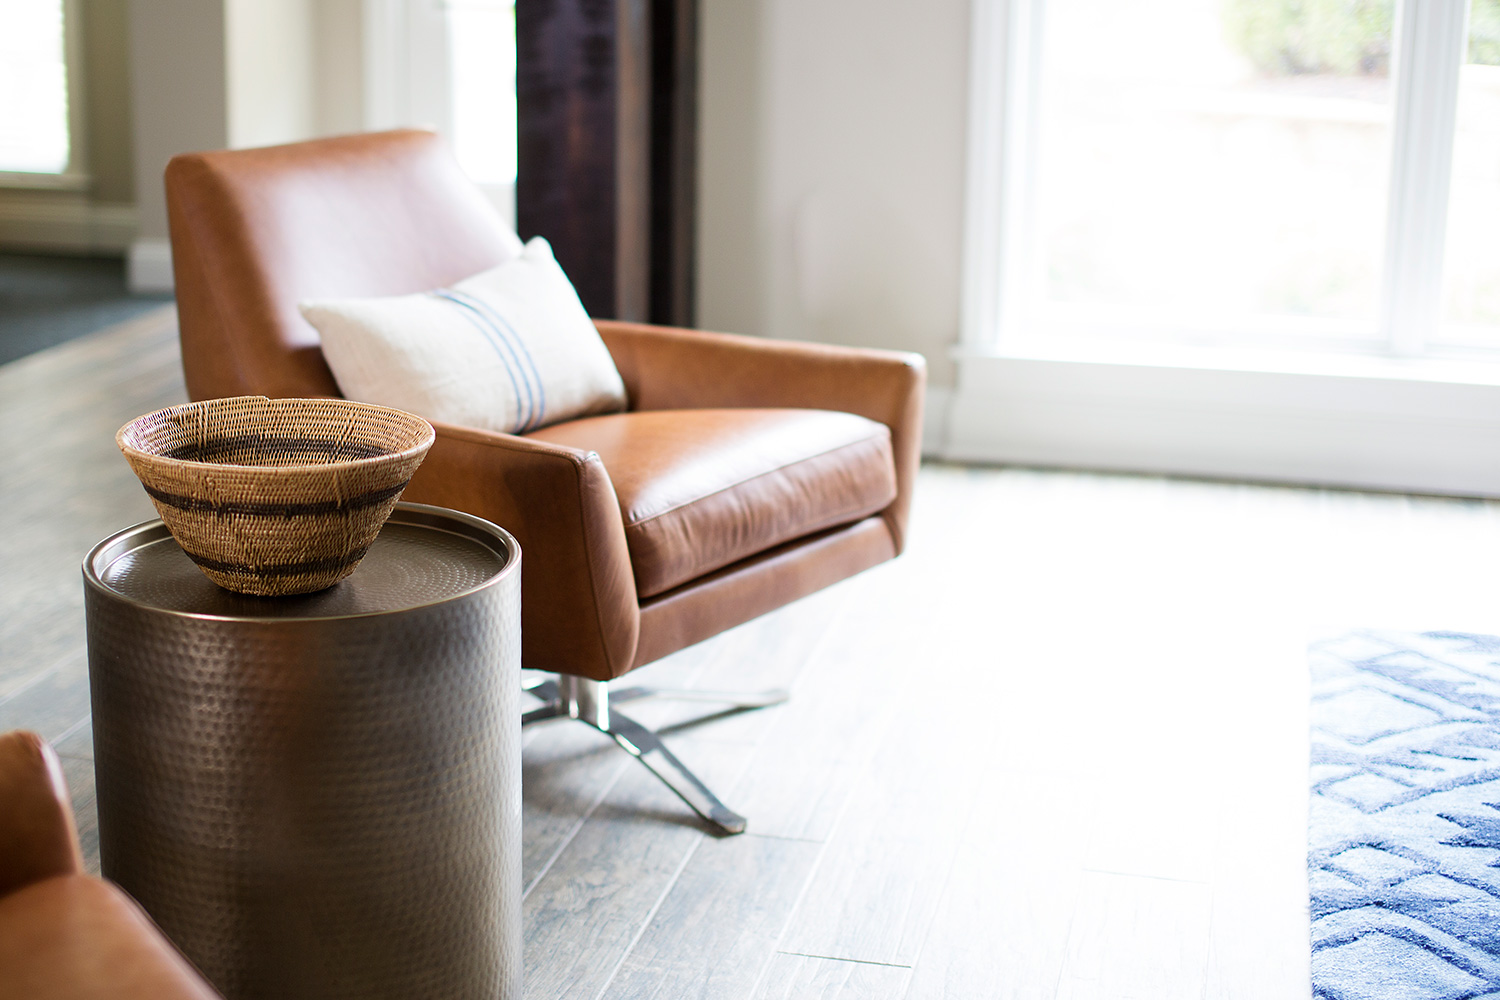 Leather swivel chair and hammered side table in basement